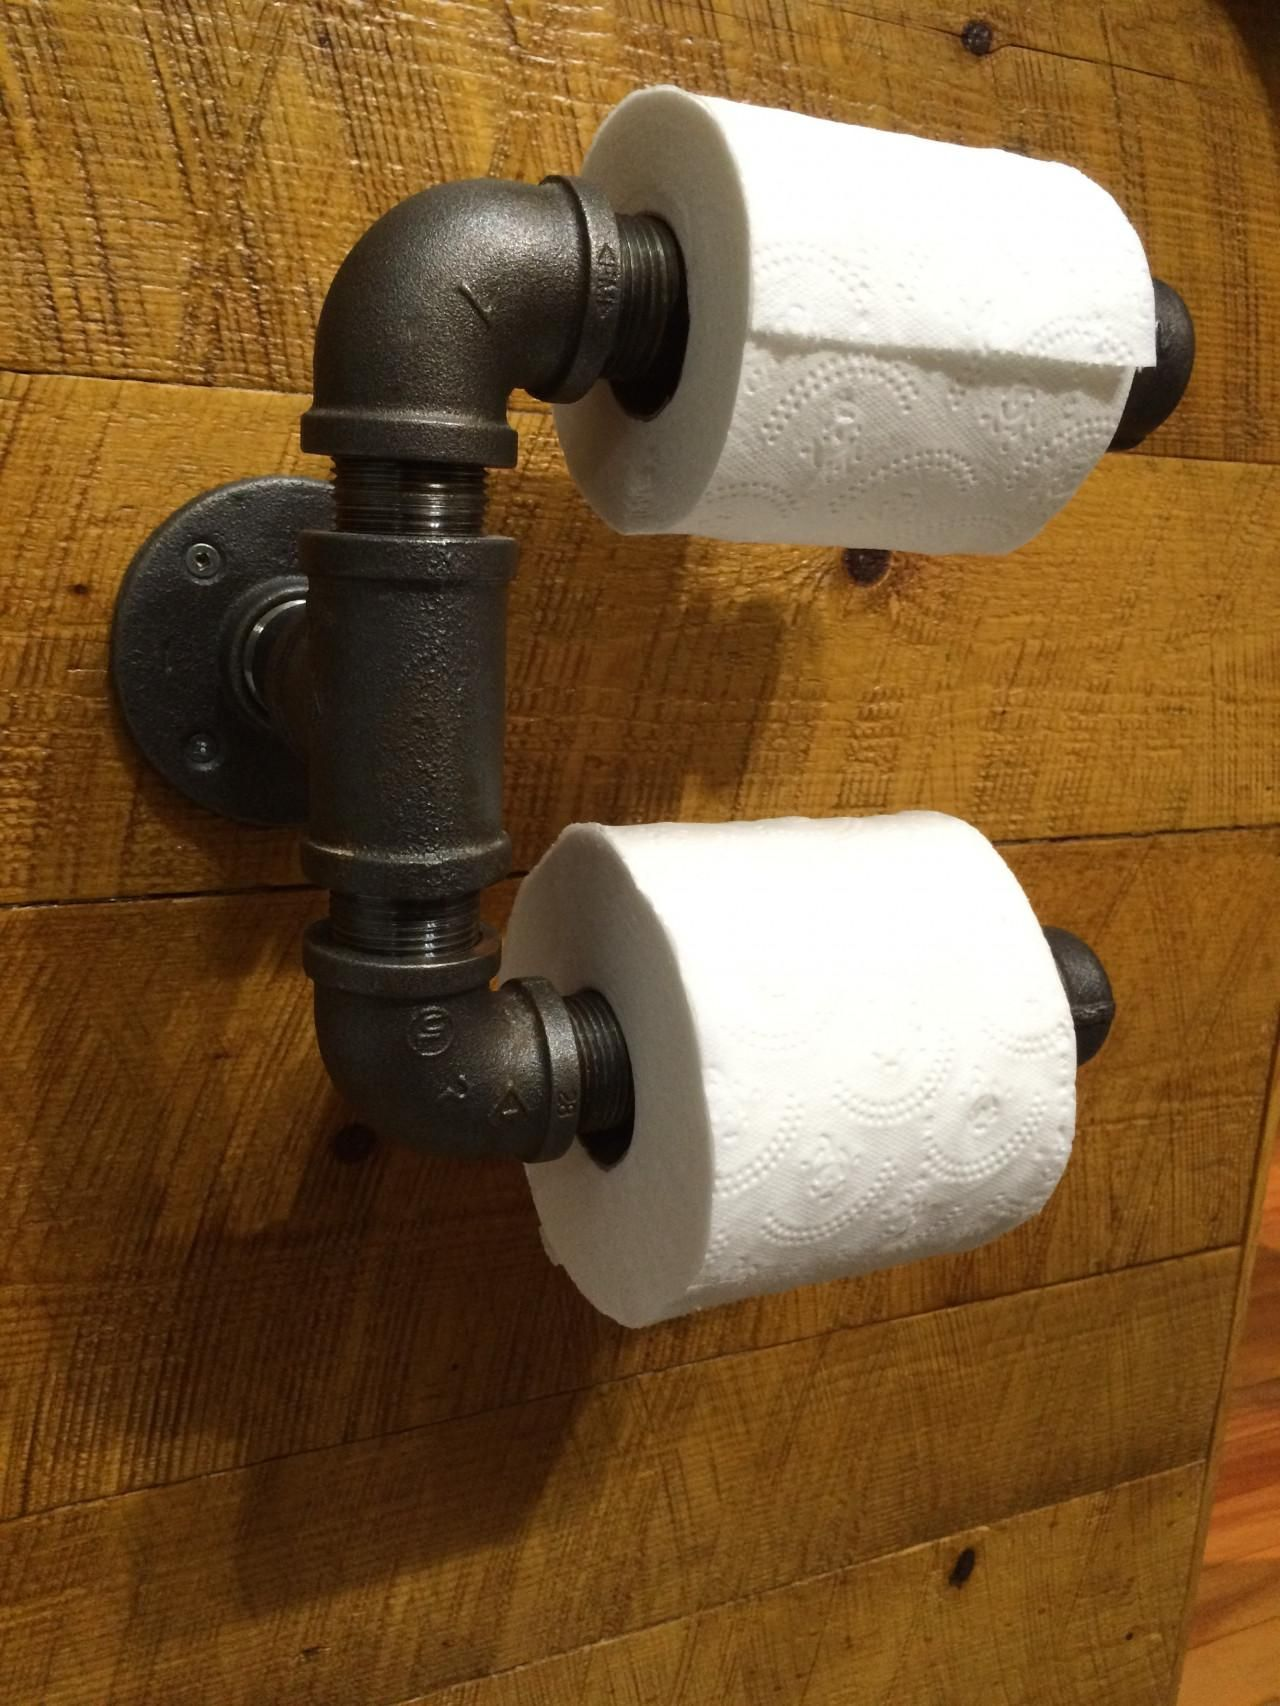 A Toilet Paper Holder May Not Be The Most Glamorous Bathroom